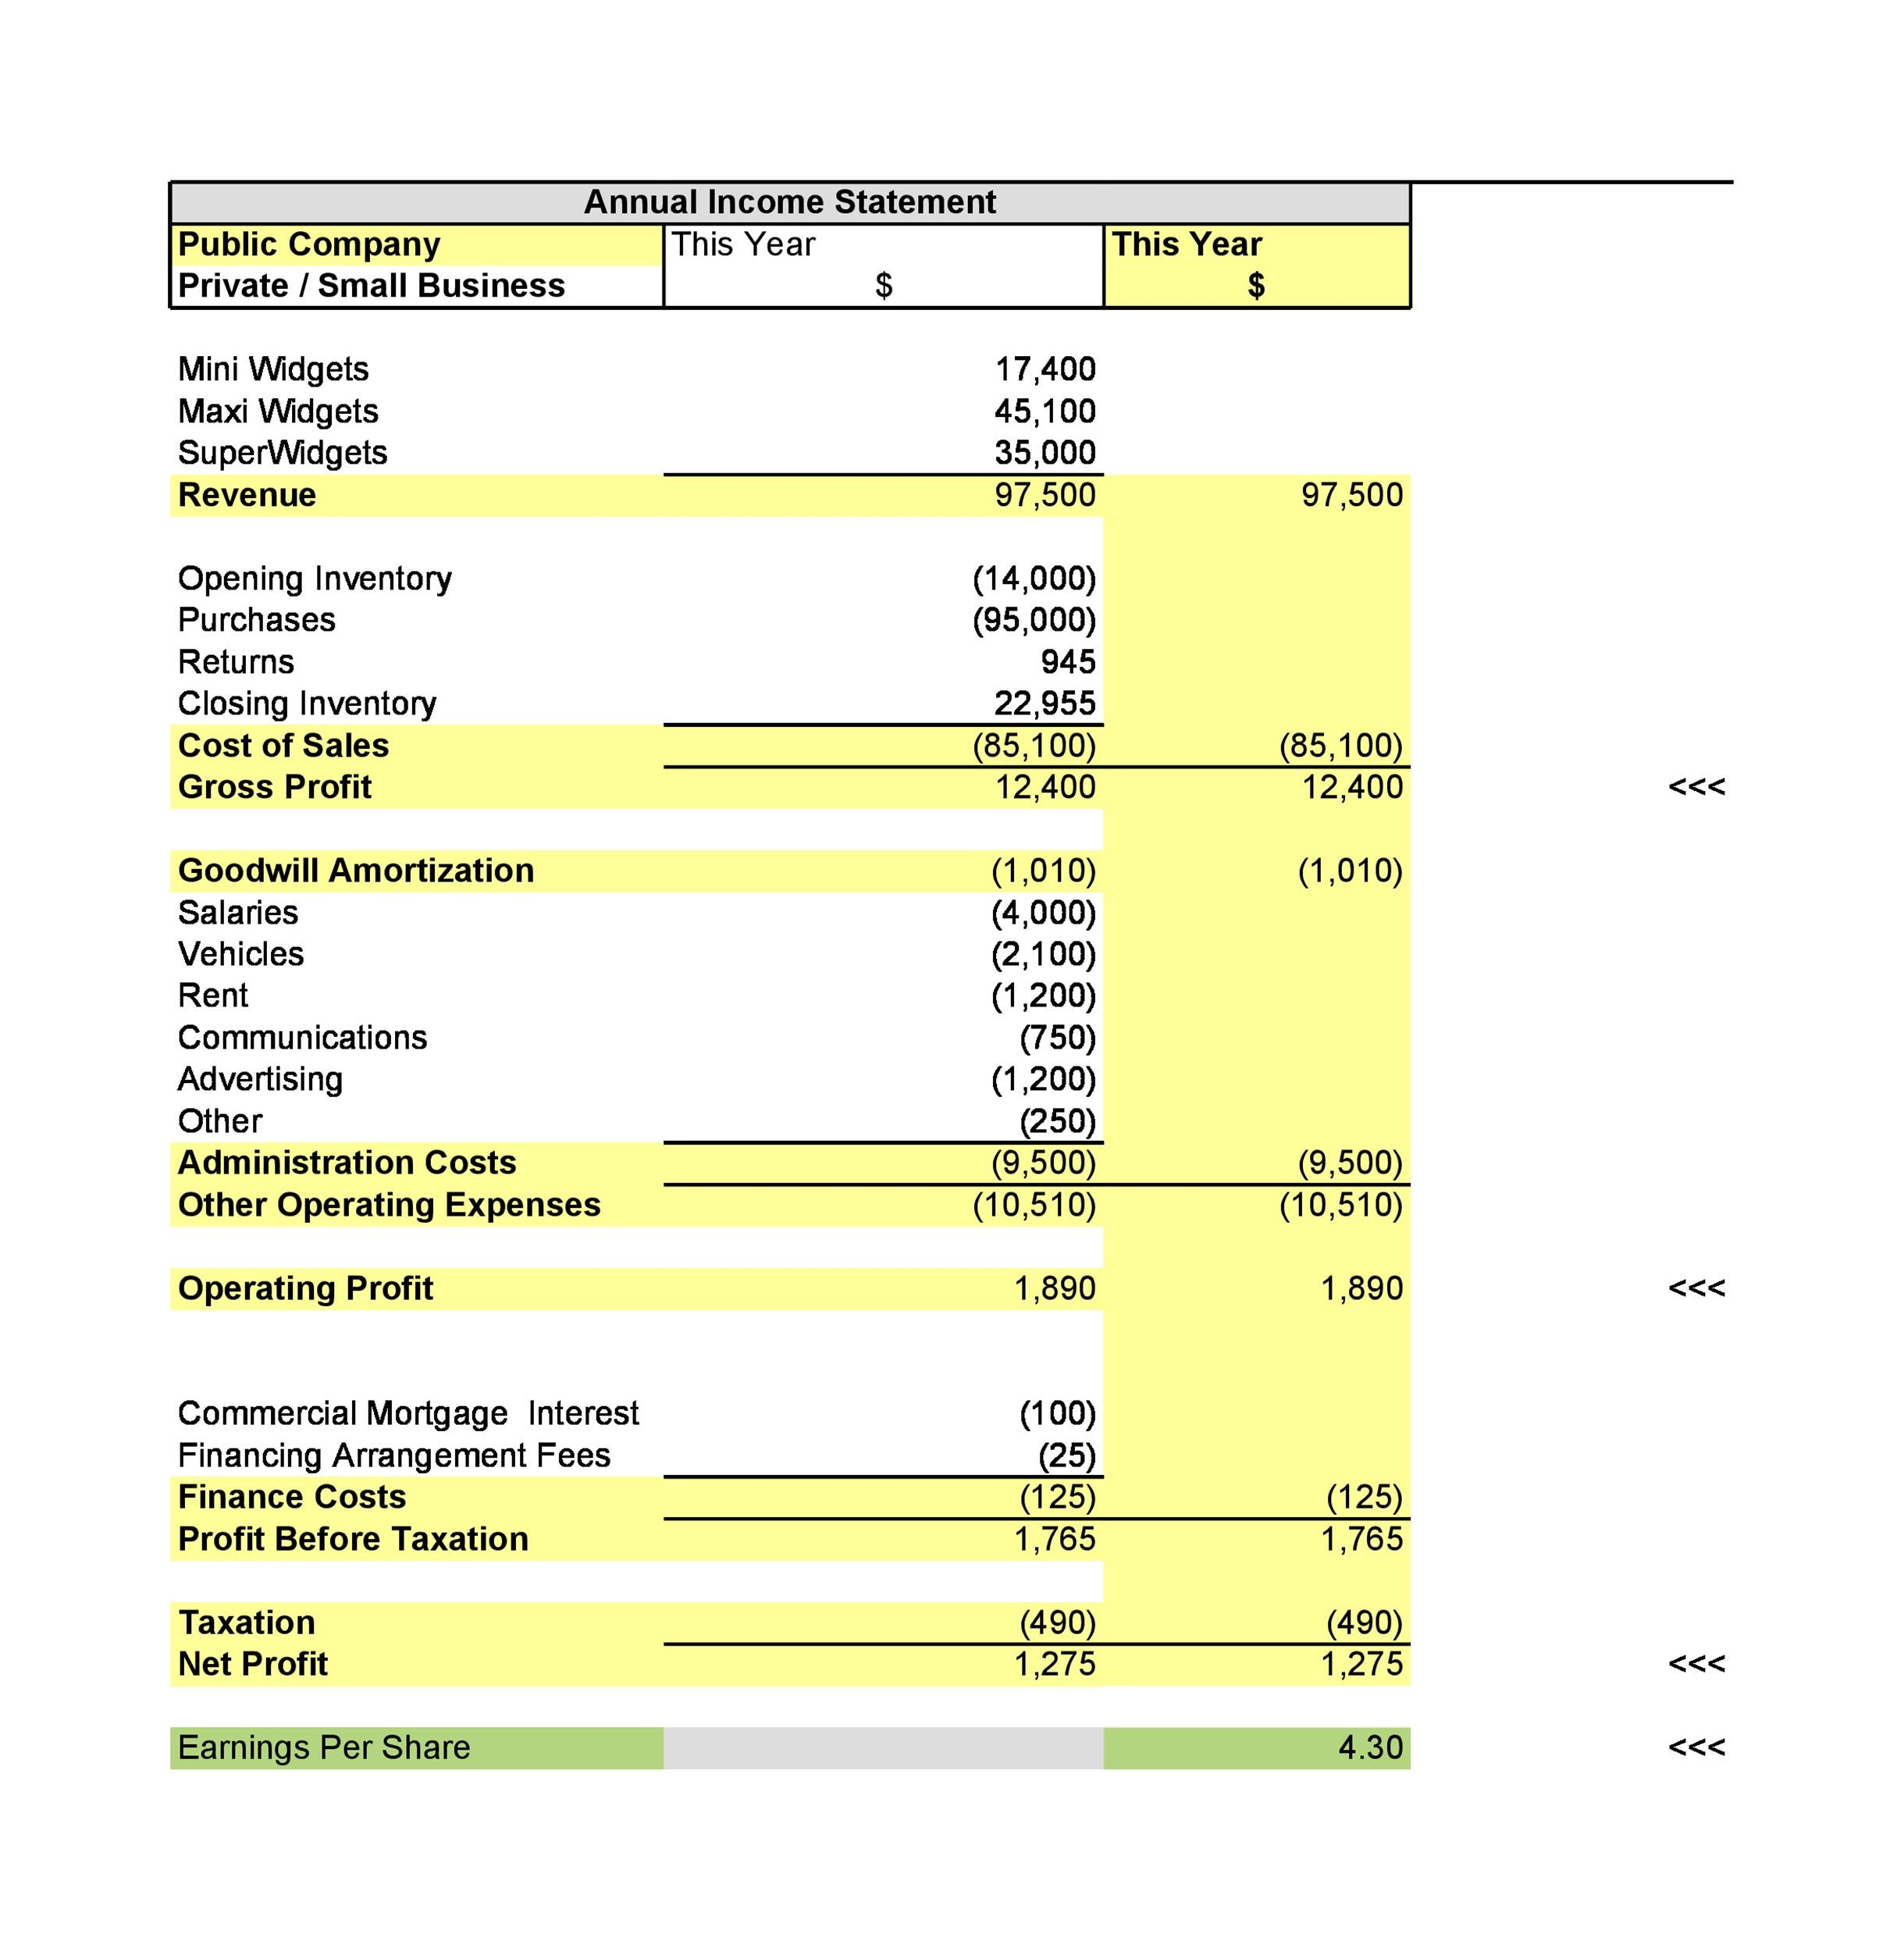 27 Income Statement Examples & Templates (Single/Multi Step, Pro